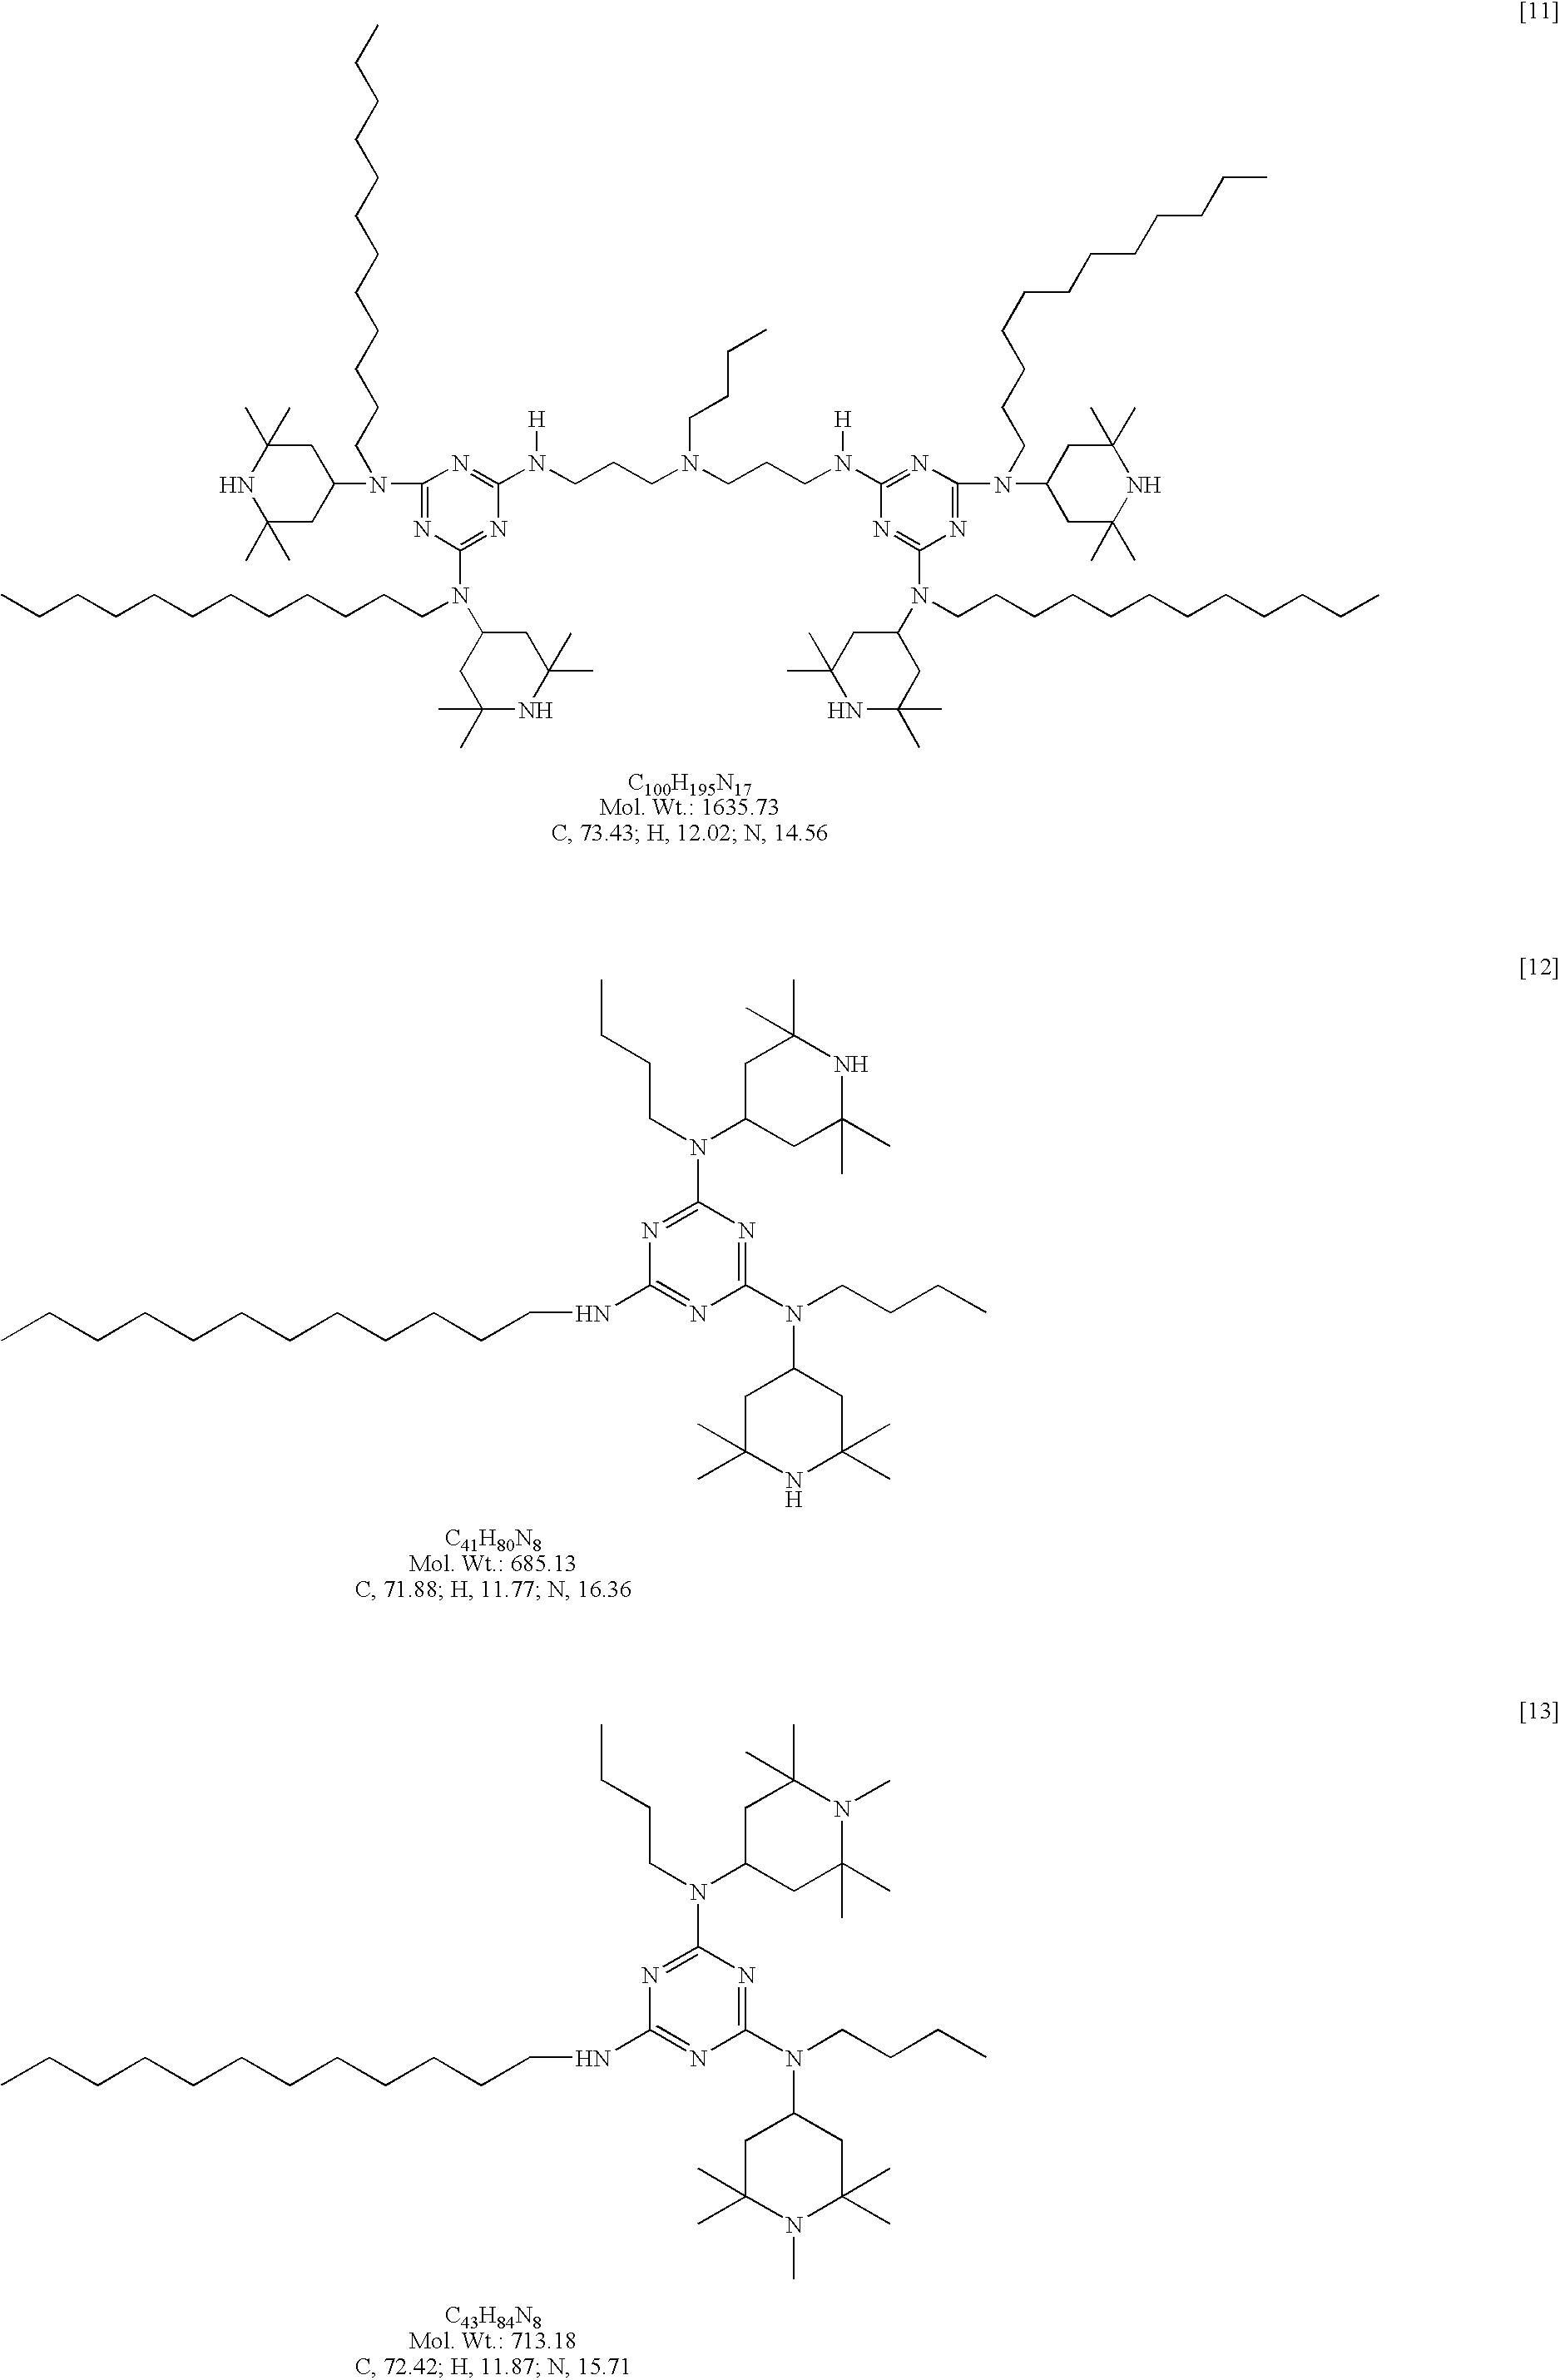 hight resolution of figure us20100074083a1 20100325 c00028